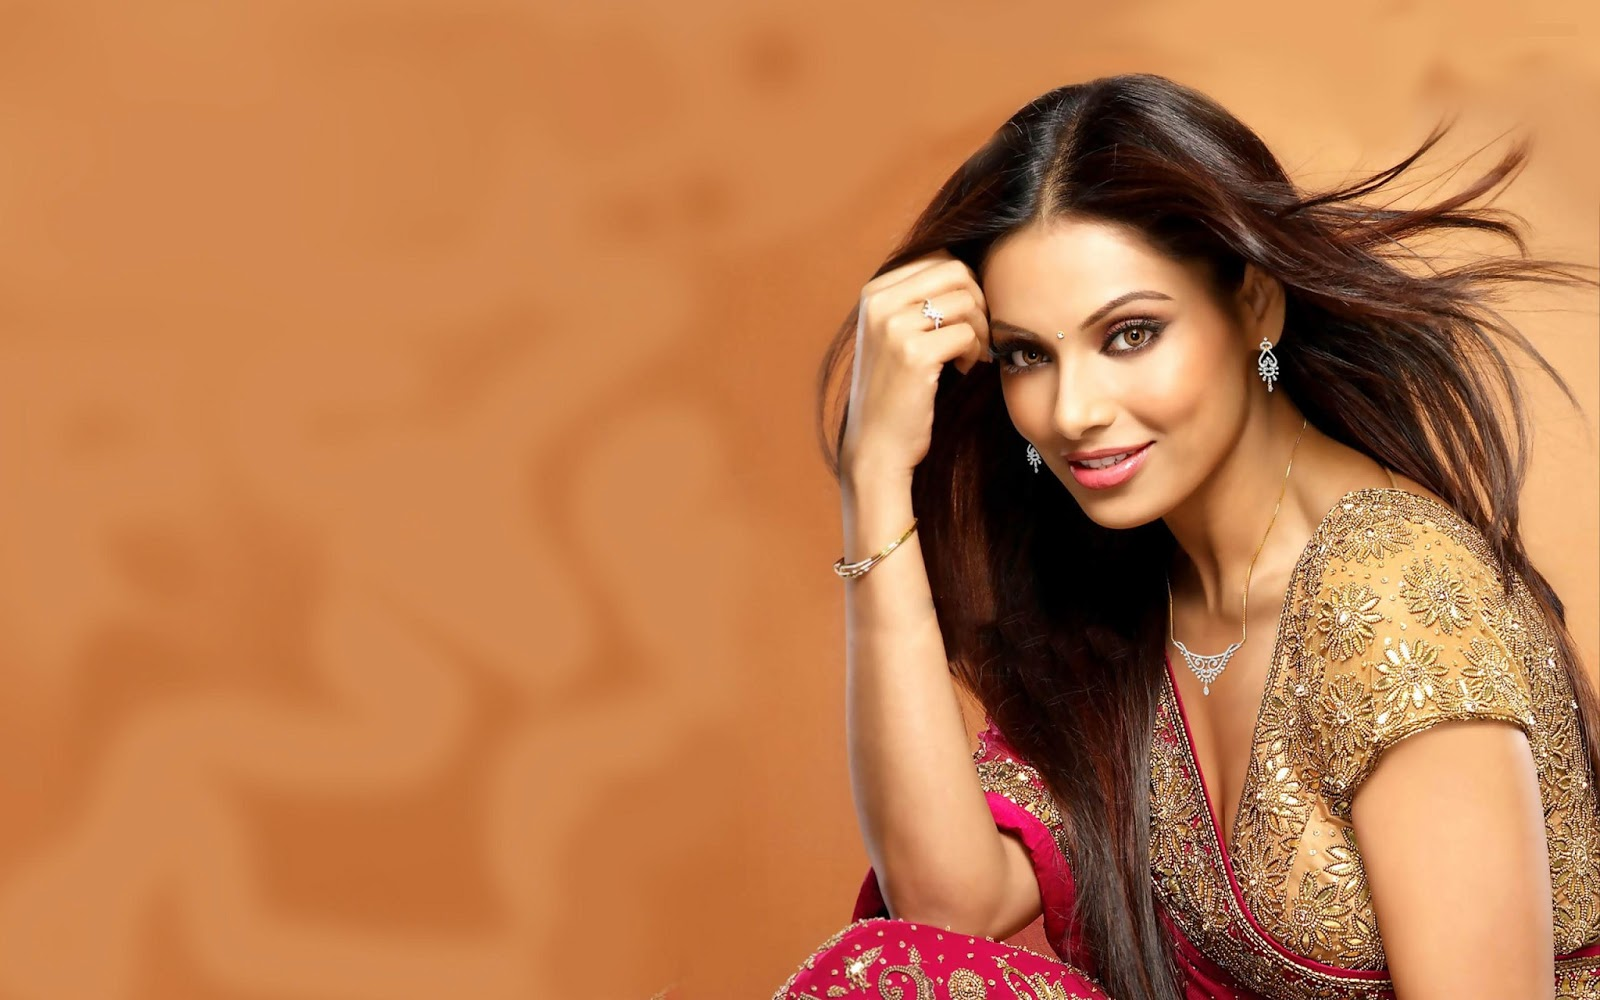 Hot Desi Curves Bipasha Basu Latest Stills And Hd Wallpapers-6854